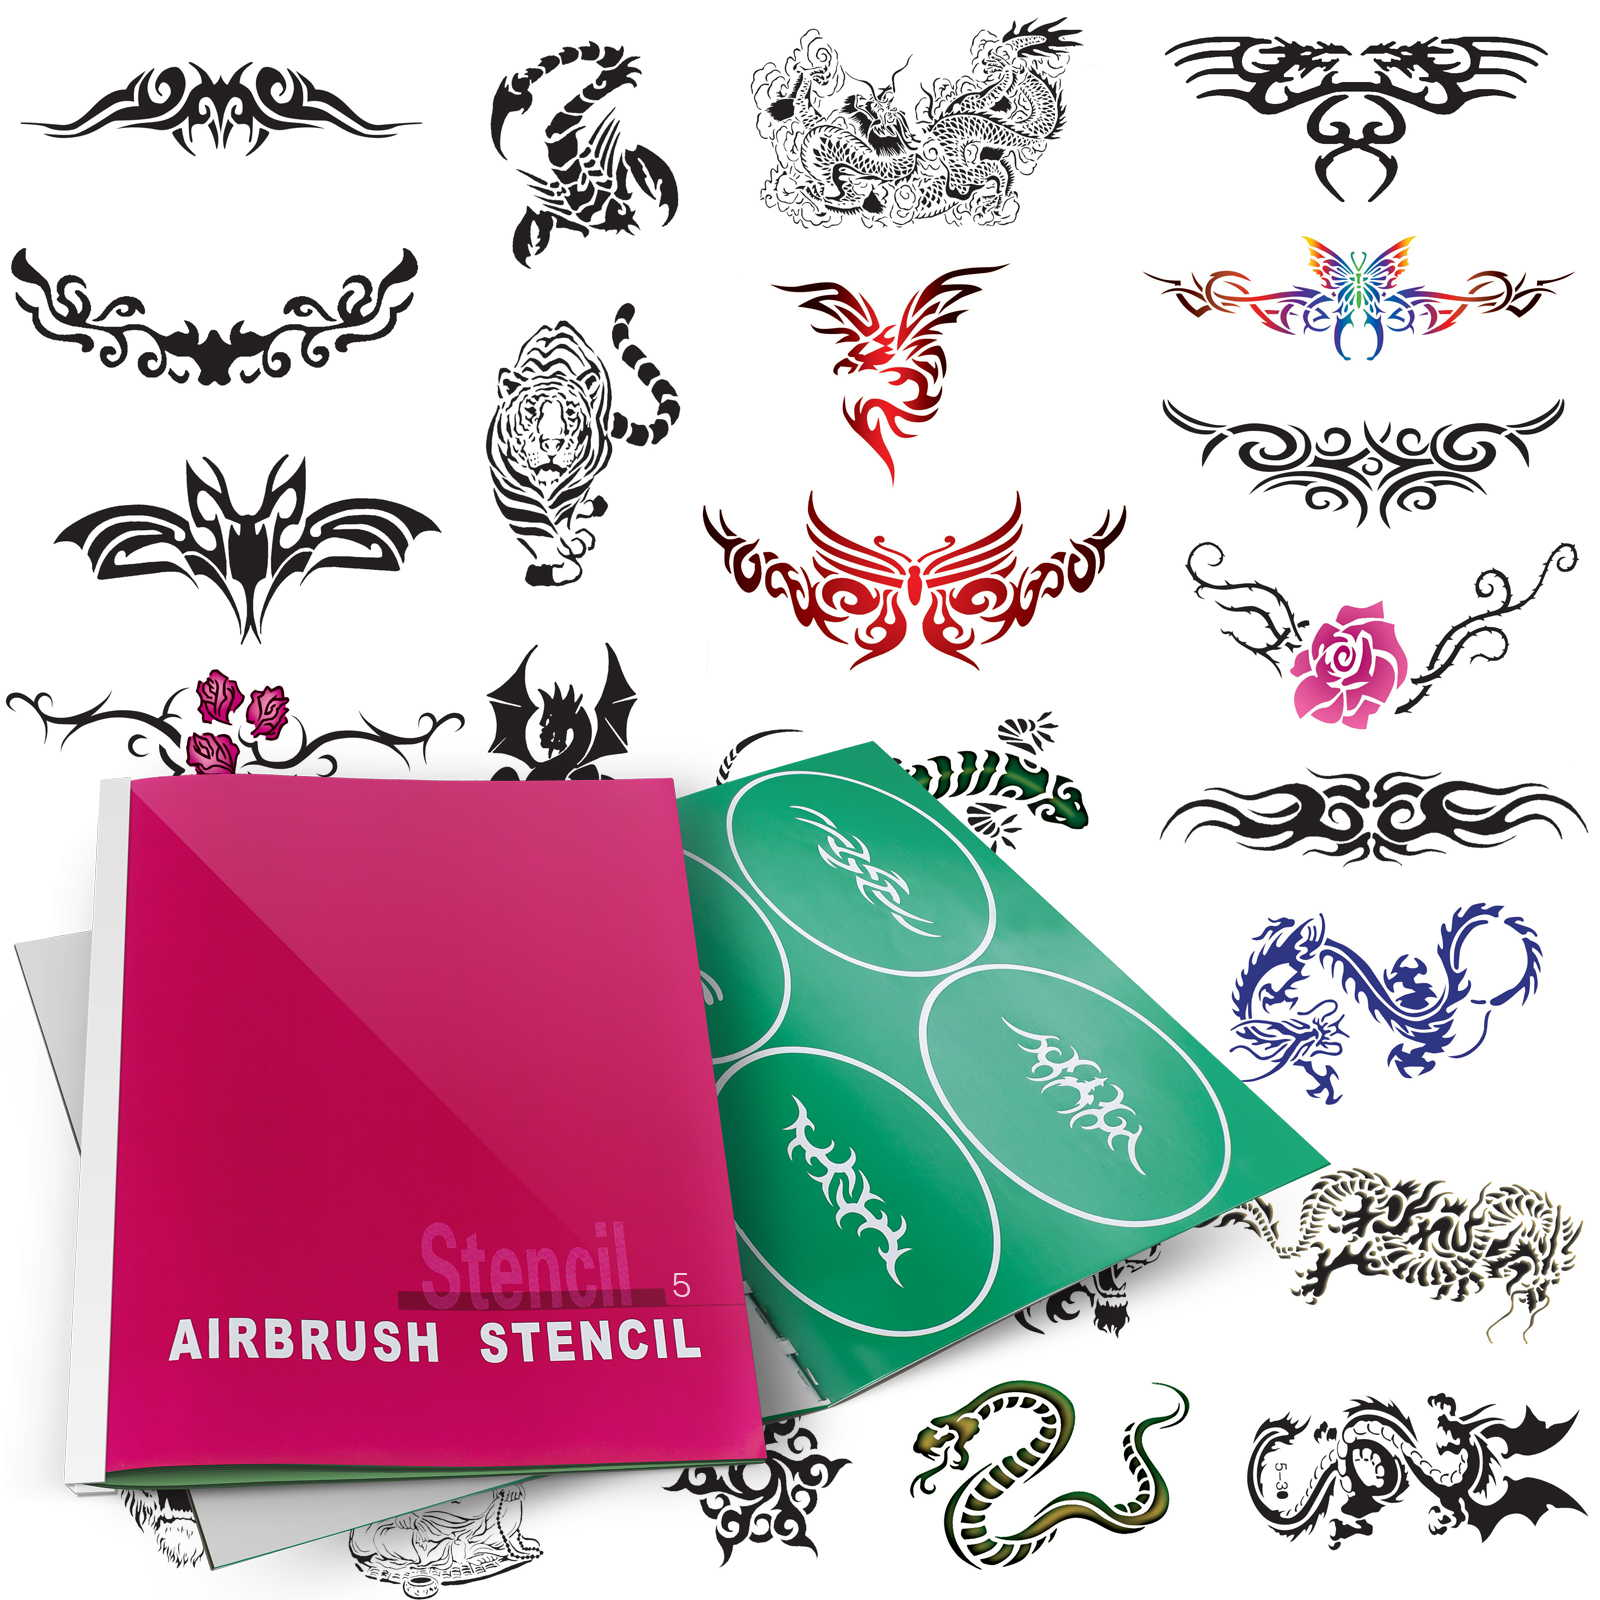 Temporary Tattoo Airbrush Design Stencil Patterns Ebay Ideas And Designs